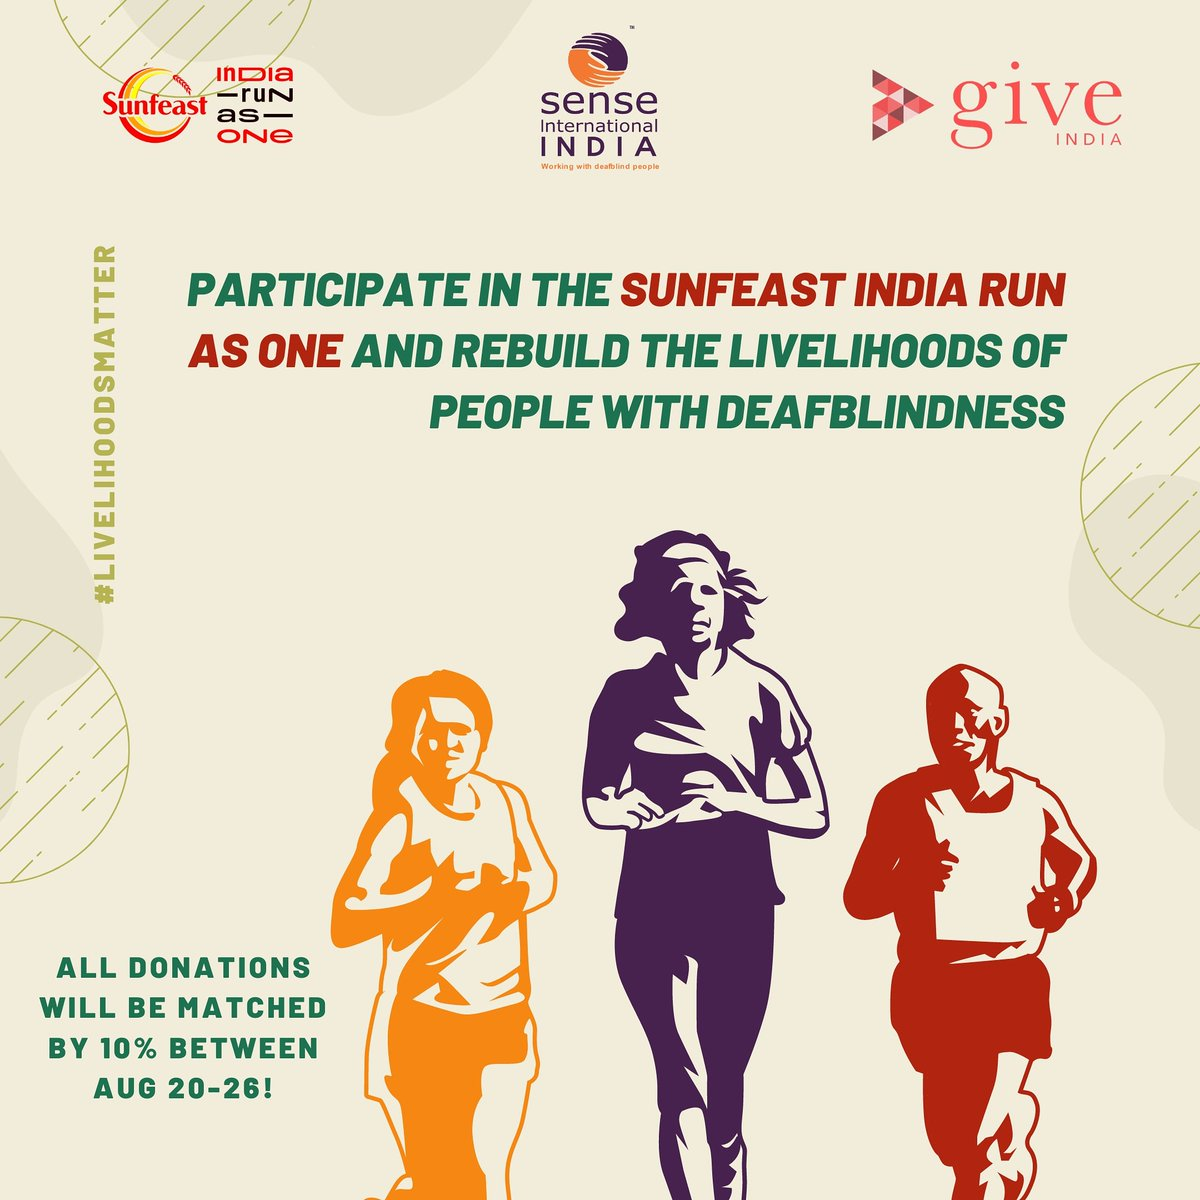 Register for the Sunfeast India Run as One and rebuild the livelihoods of people with deafblindness.  Register today!   #senseindia #deafblindness #sunfeastindiarunasone #giveindia #run #donate #livelihoodsmatter #MoveforGood